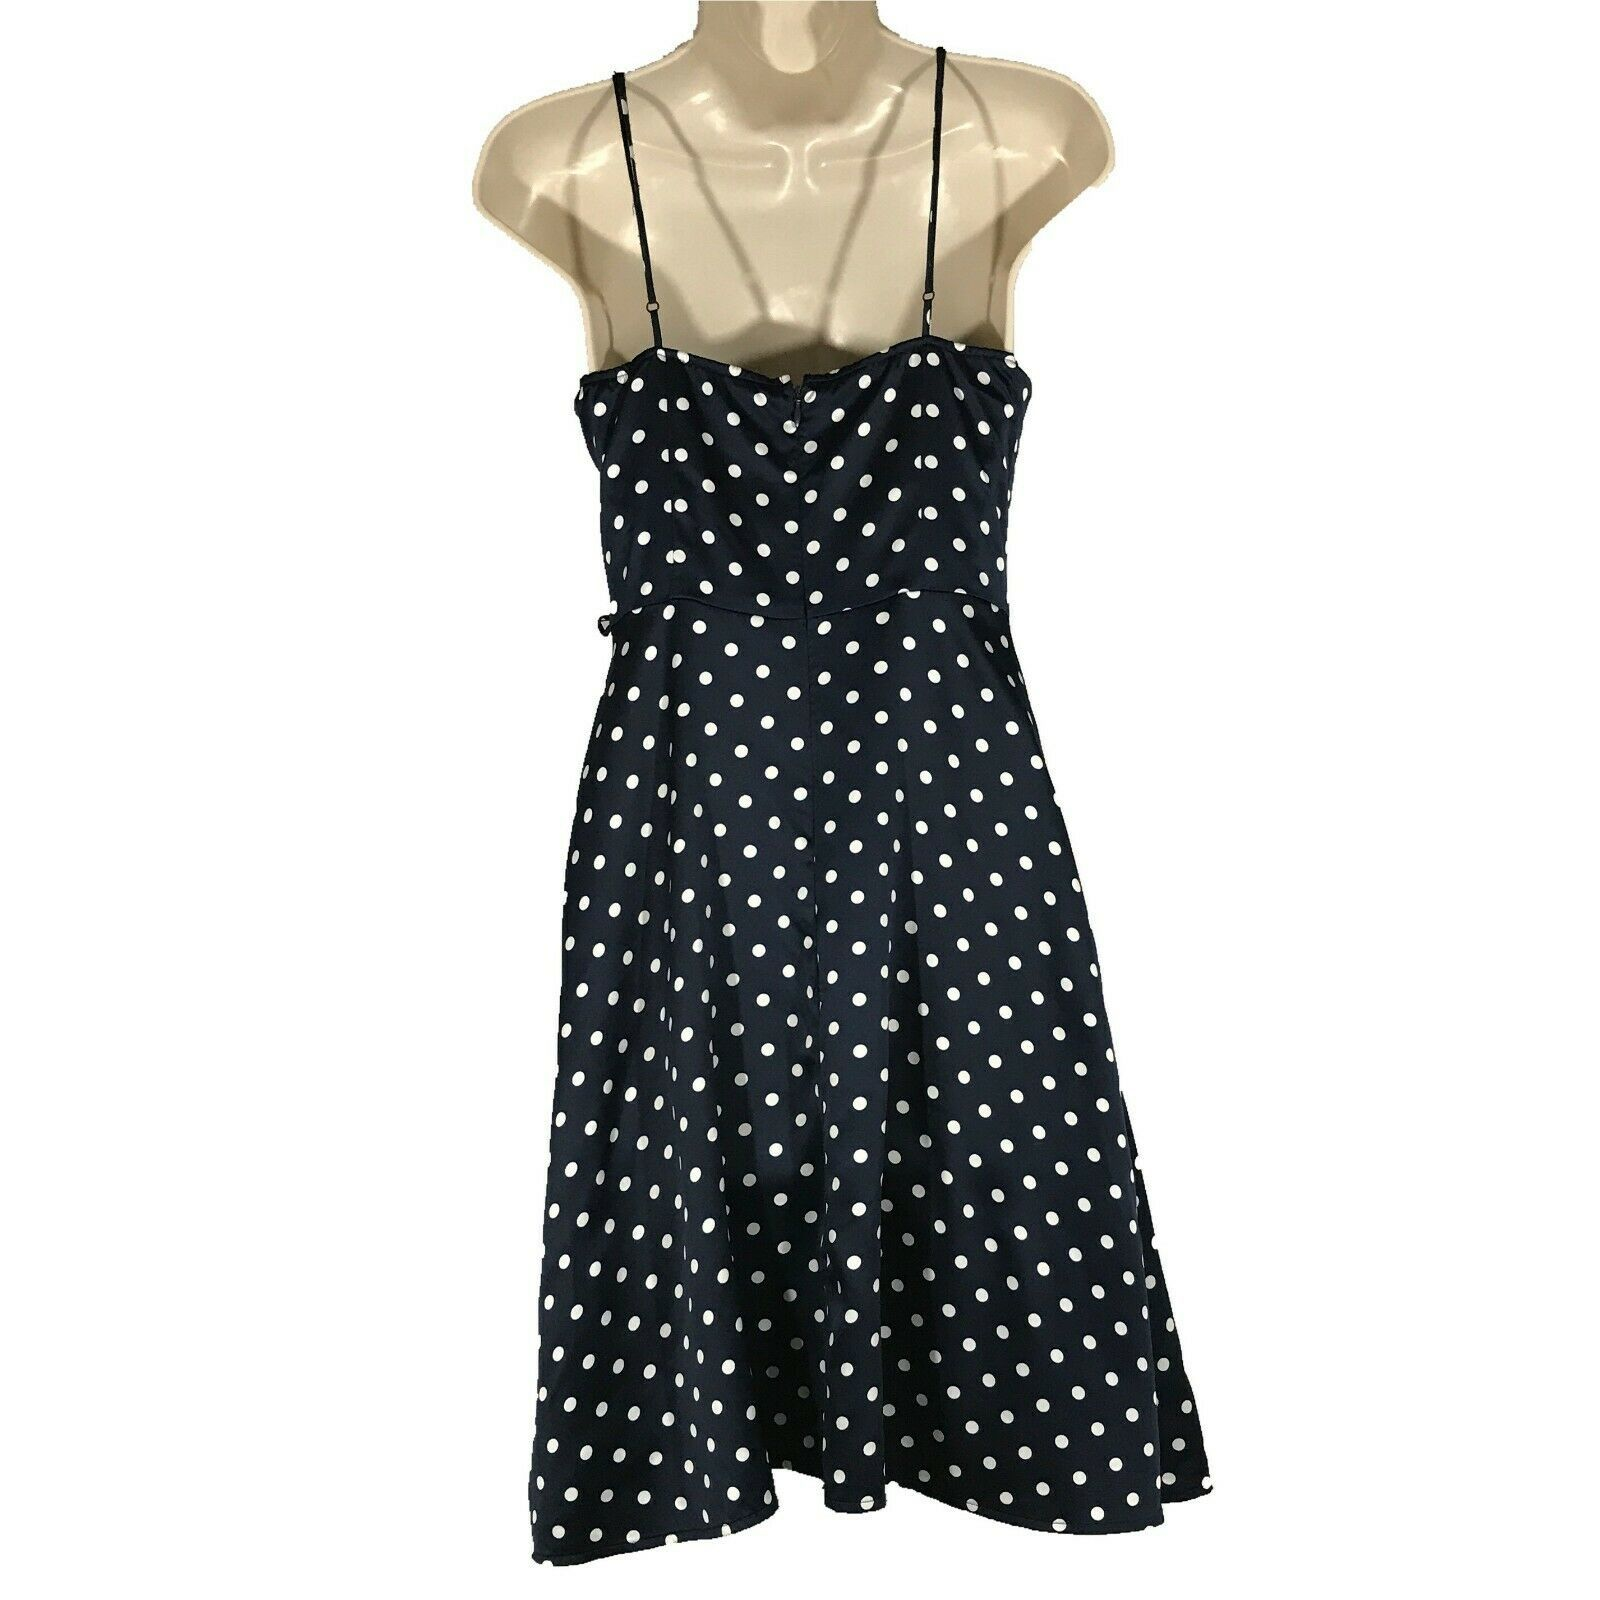 Forever 21 Small Dress Navy Blue White Polka Dot Satin Cocktail Beach Party SEXY